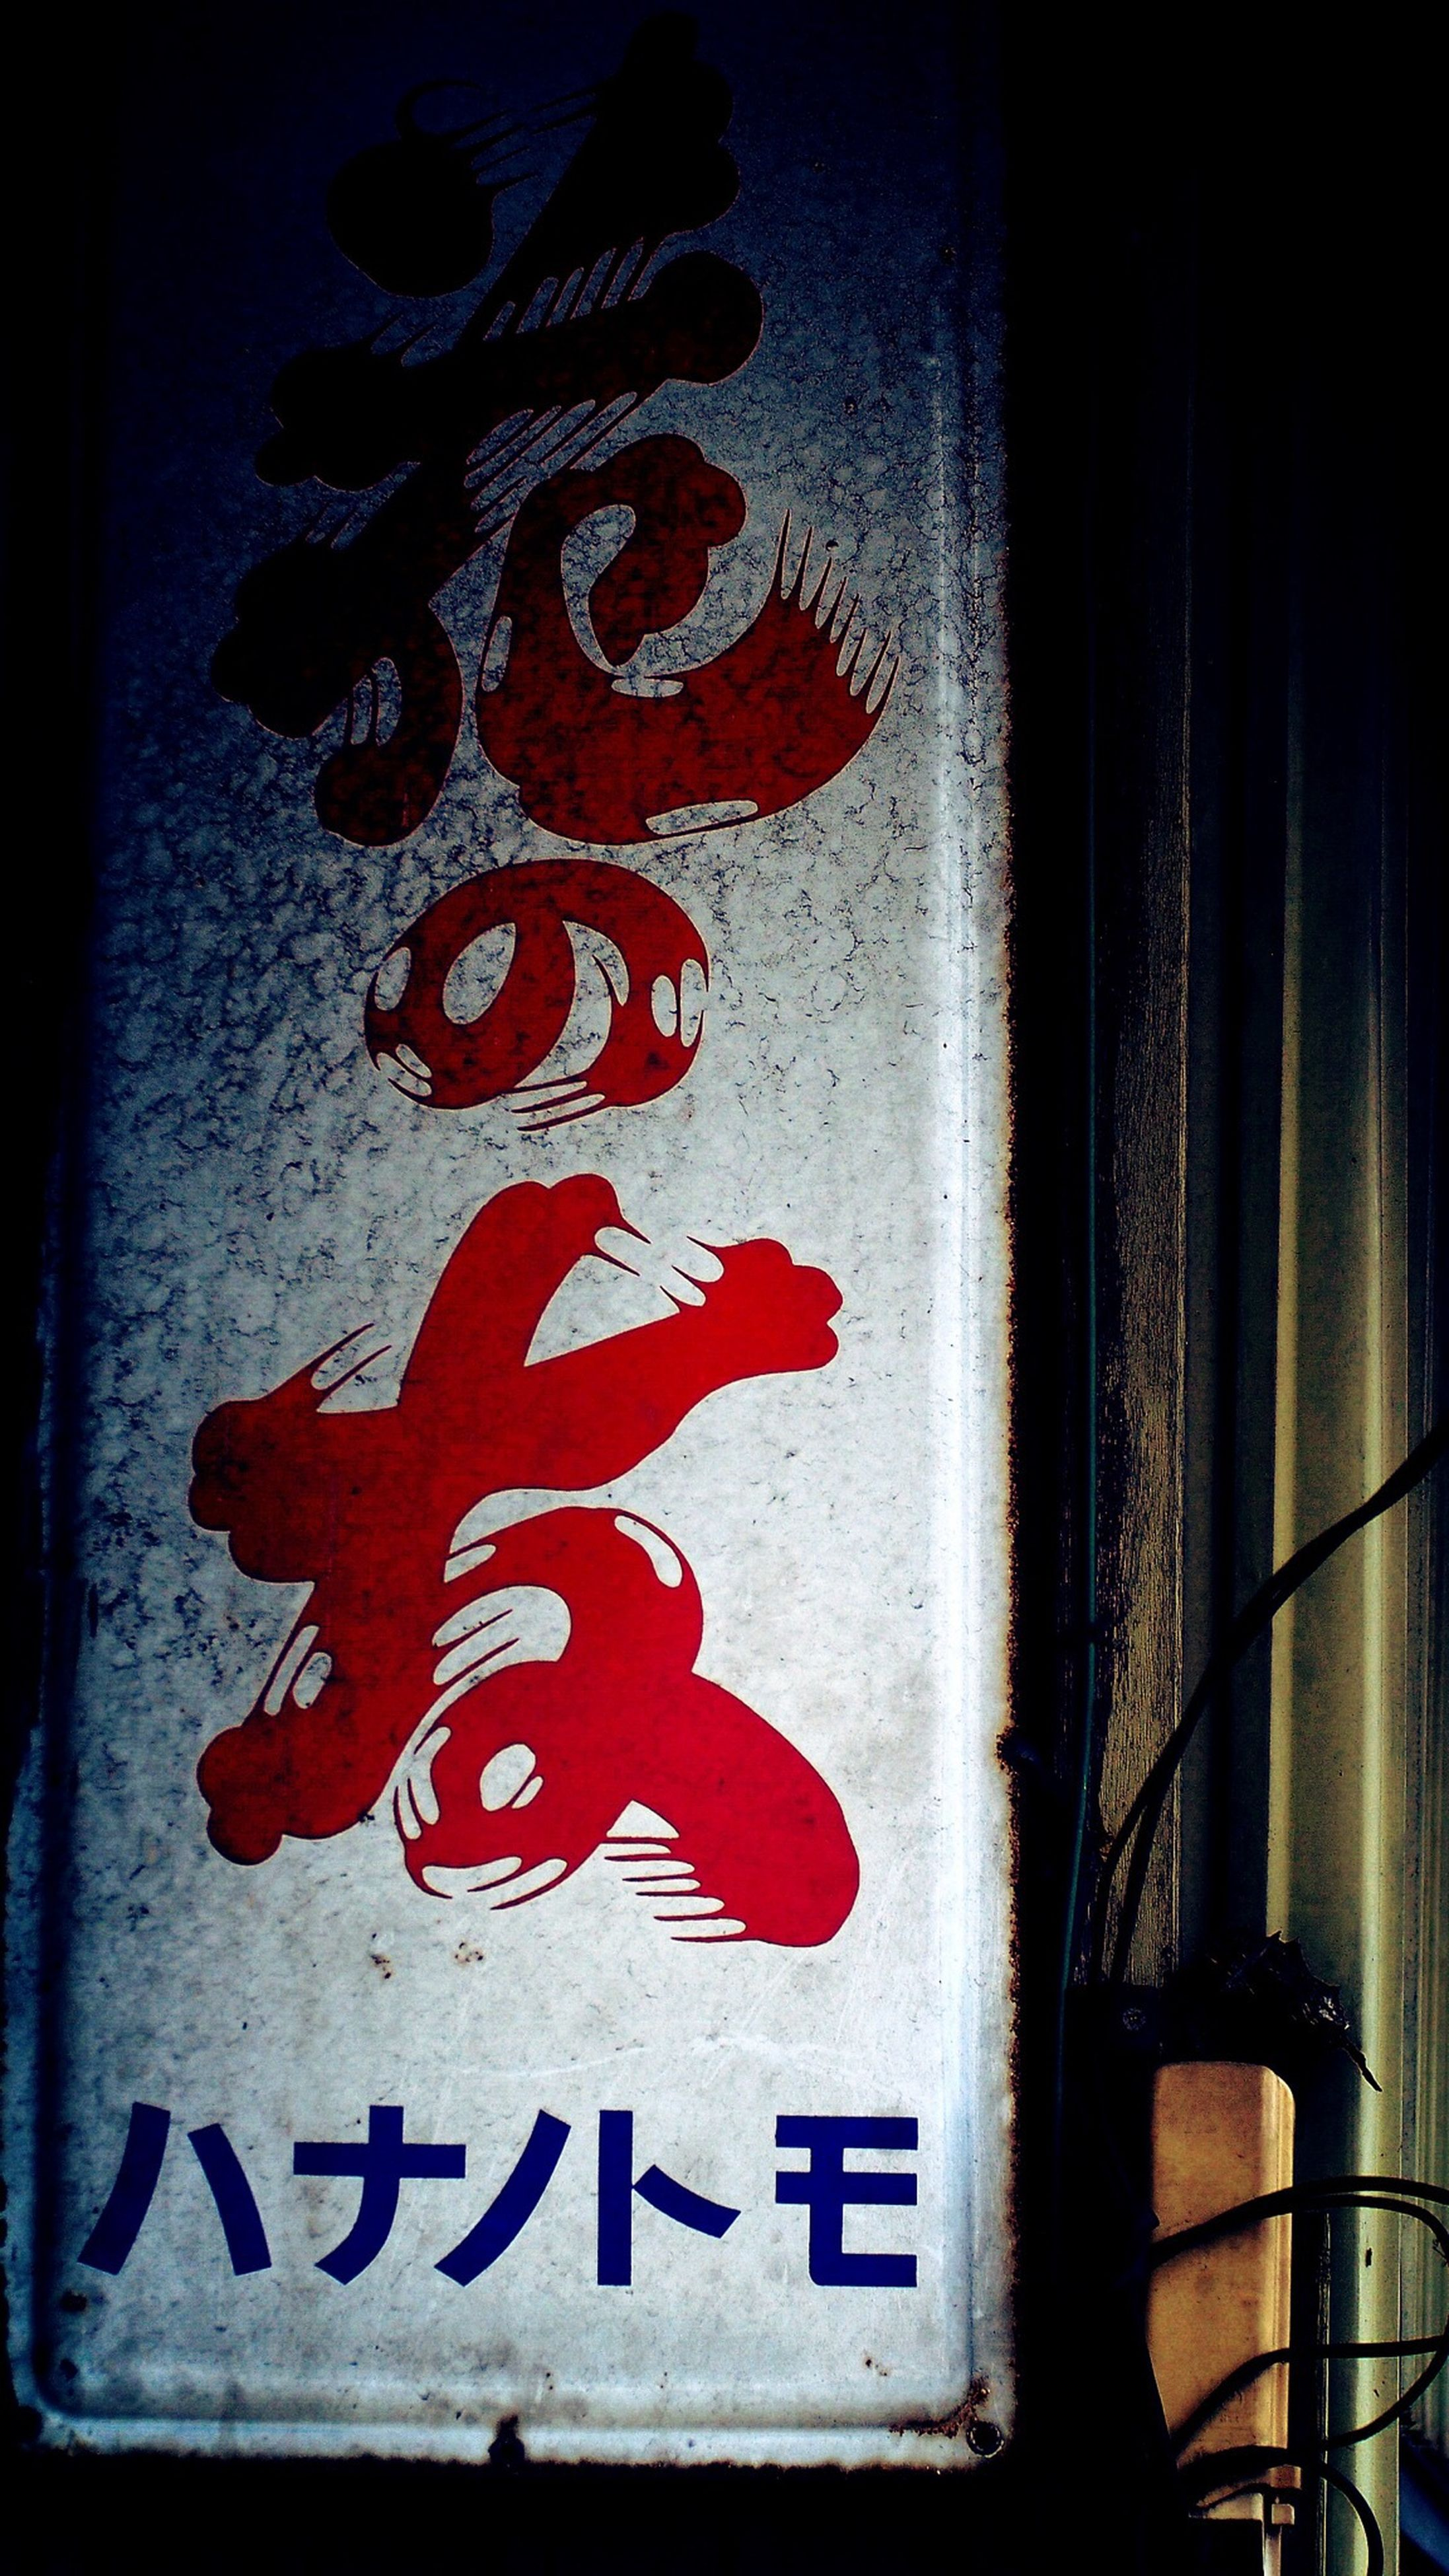 text, western script, communication, red, indoors, capital letter, non-western script, information, wall - building feature, close-up, no people, sign, information sign, message, wall, hanging, guidance, architecture, low angle view, built structure